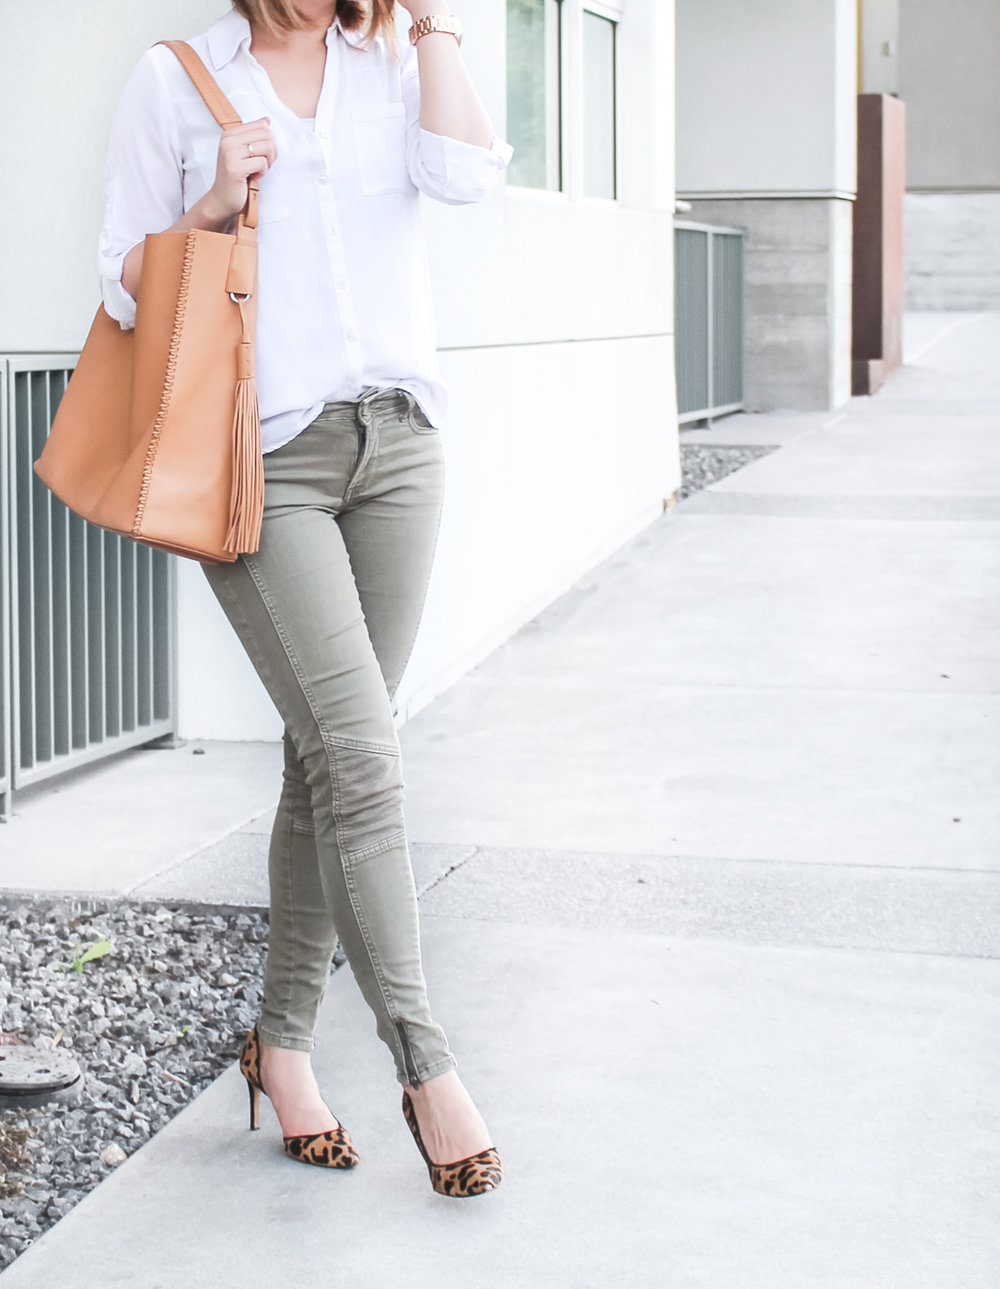 Express Portofino Shirt & All Saints Paradise North/South Leather Tote | The Chic Diary